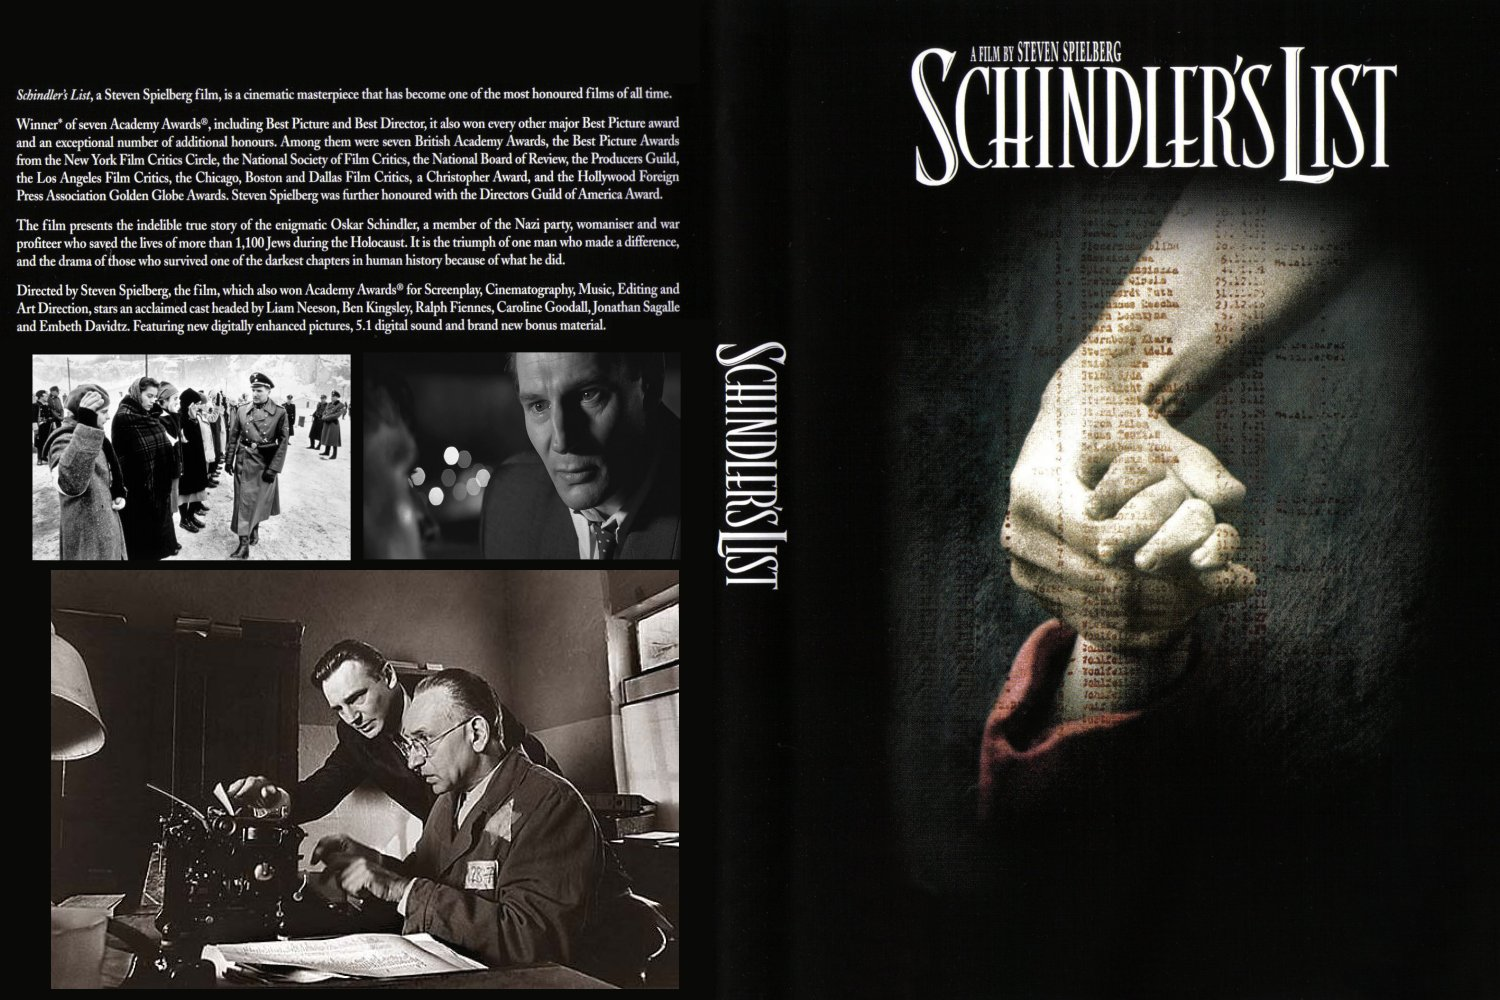 an analysis of the plot characters and theme of the movie schindlers list The movie, schindler's list, is based off of a true story of oskar schindler  historical analysis: upsides schindler's list.